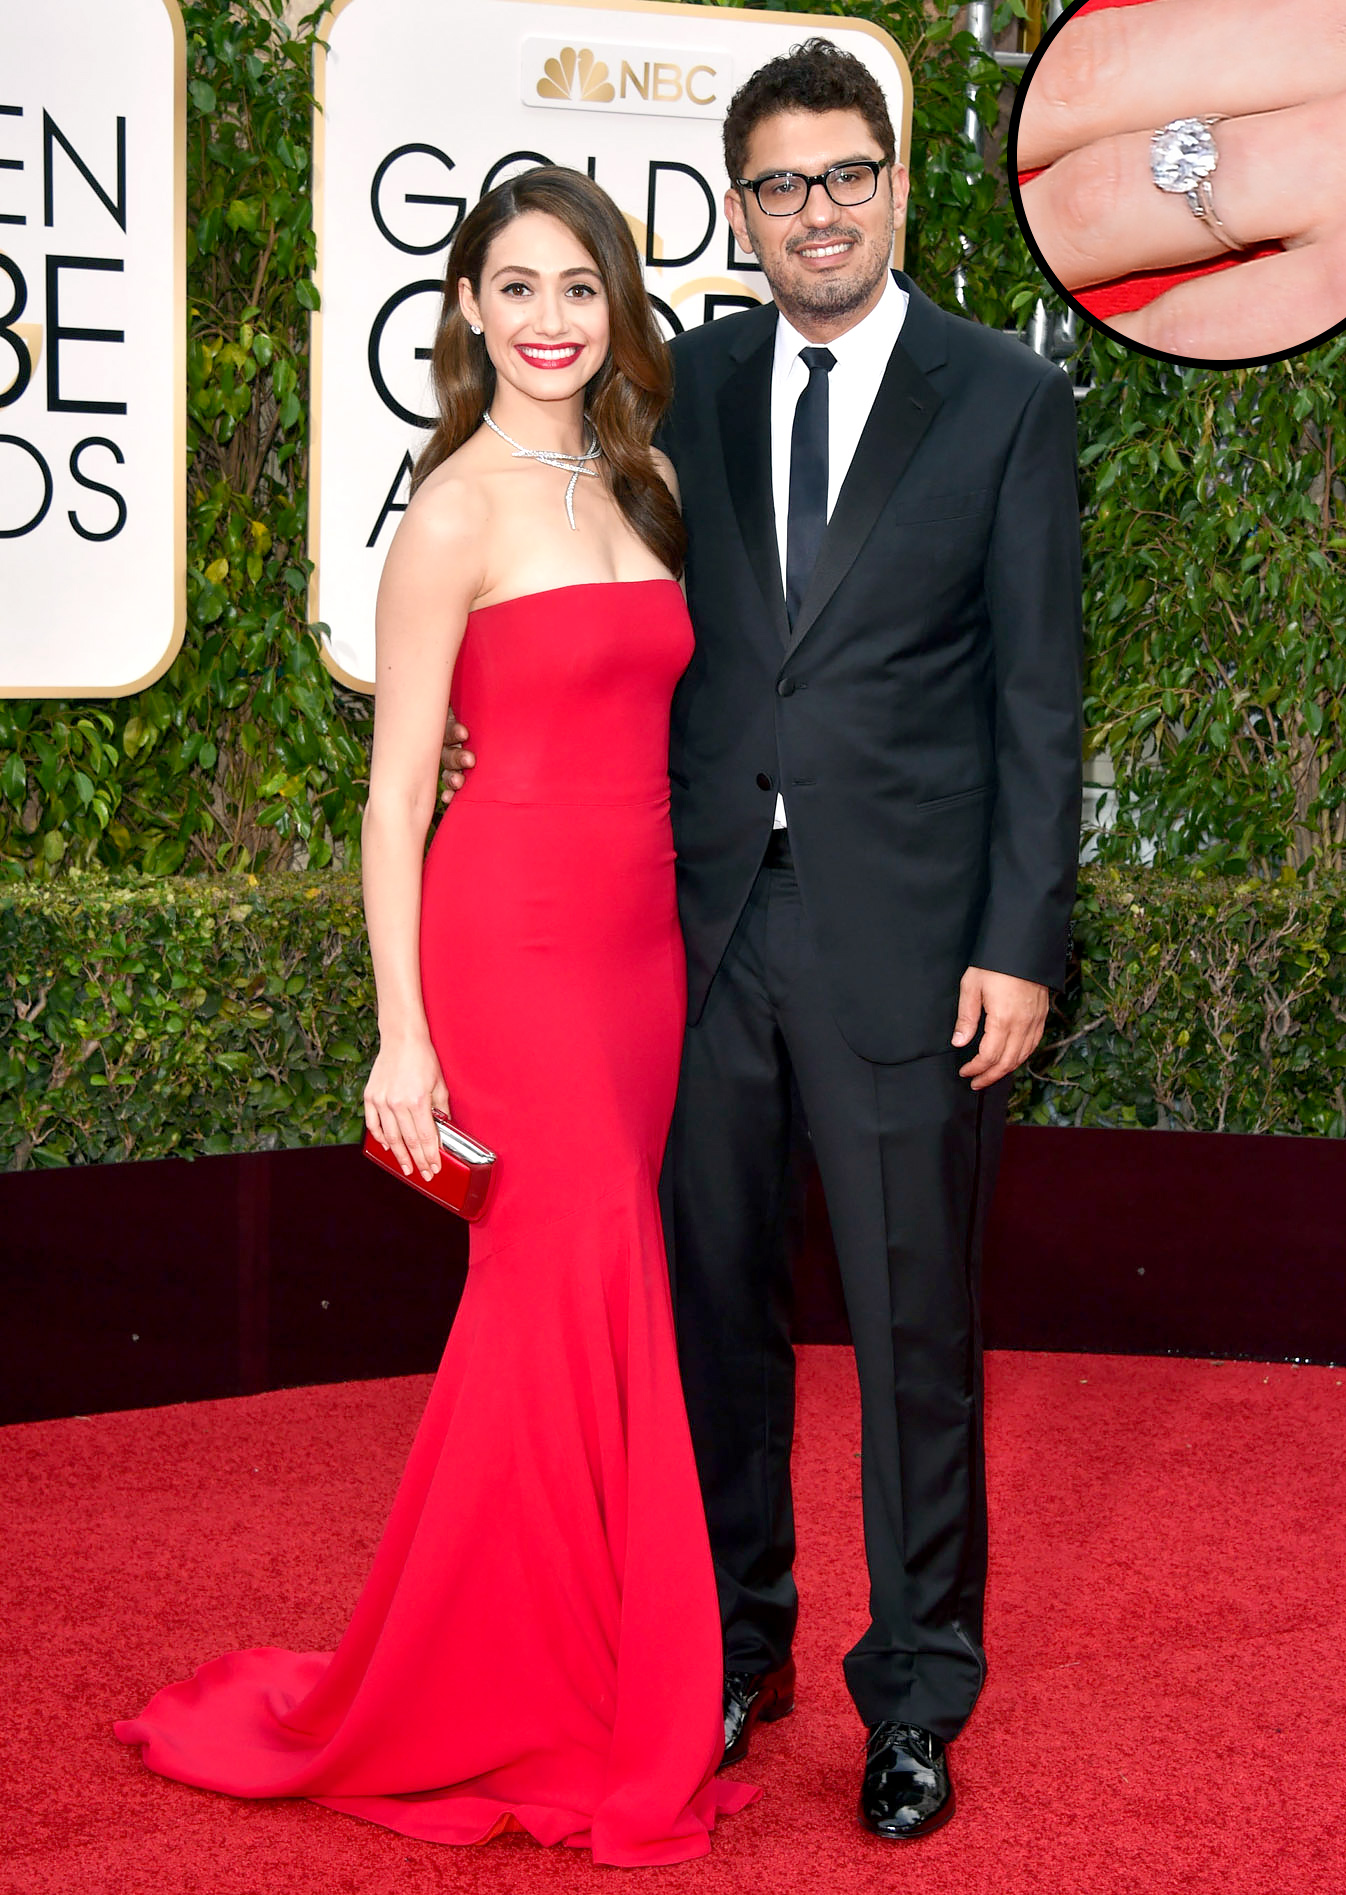 Emmy Rossum and fiance Sam Esmail on 2016 Golden Globes red carpet